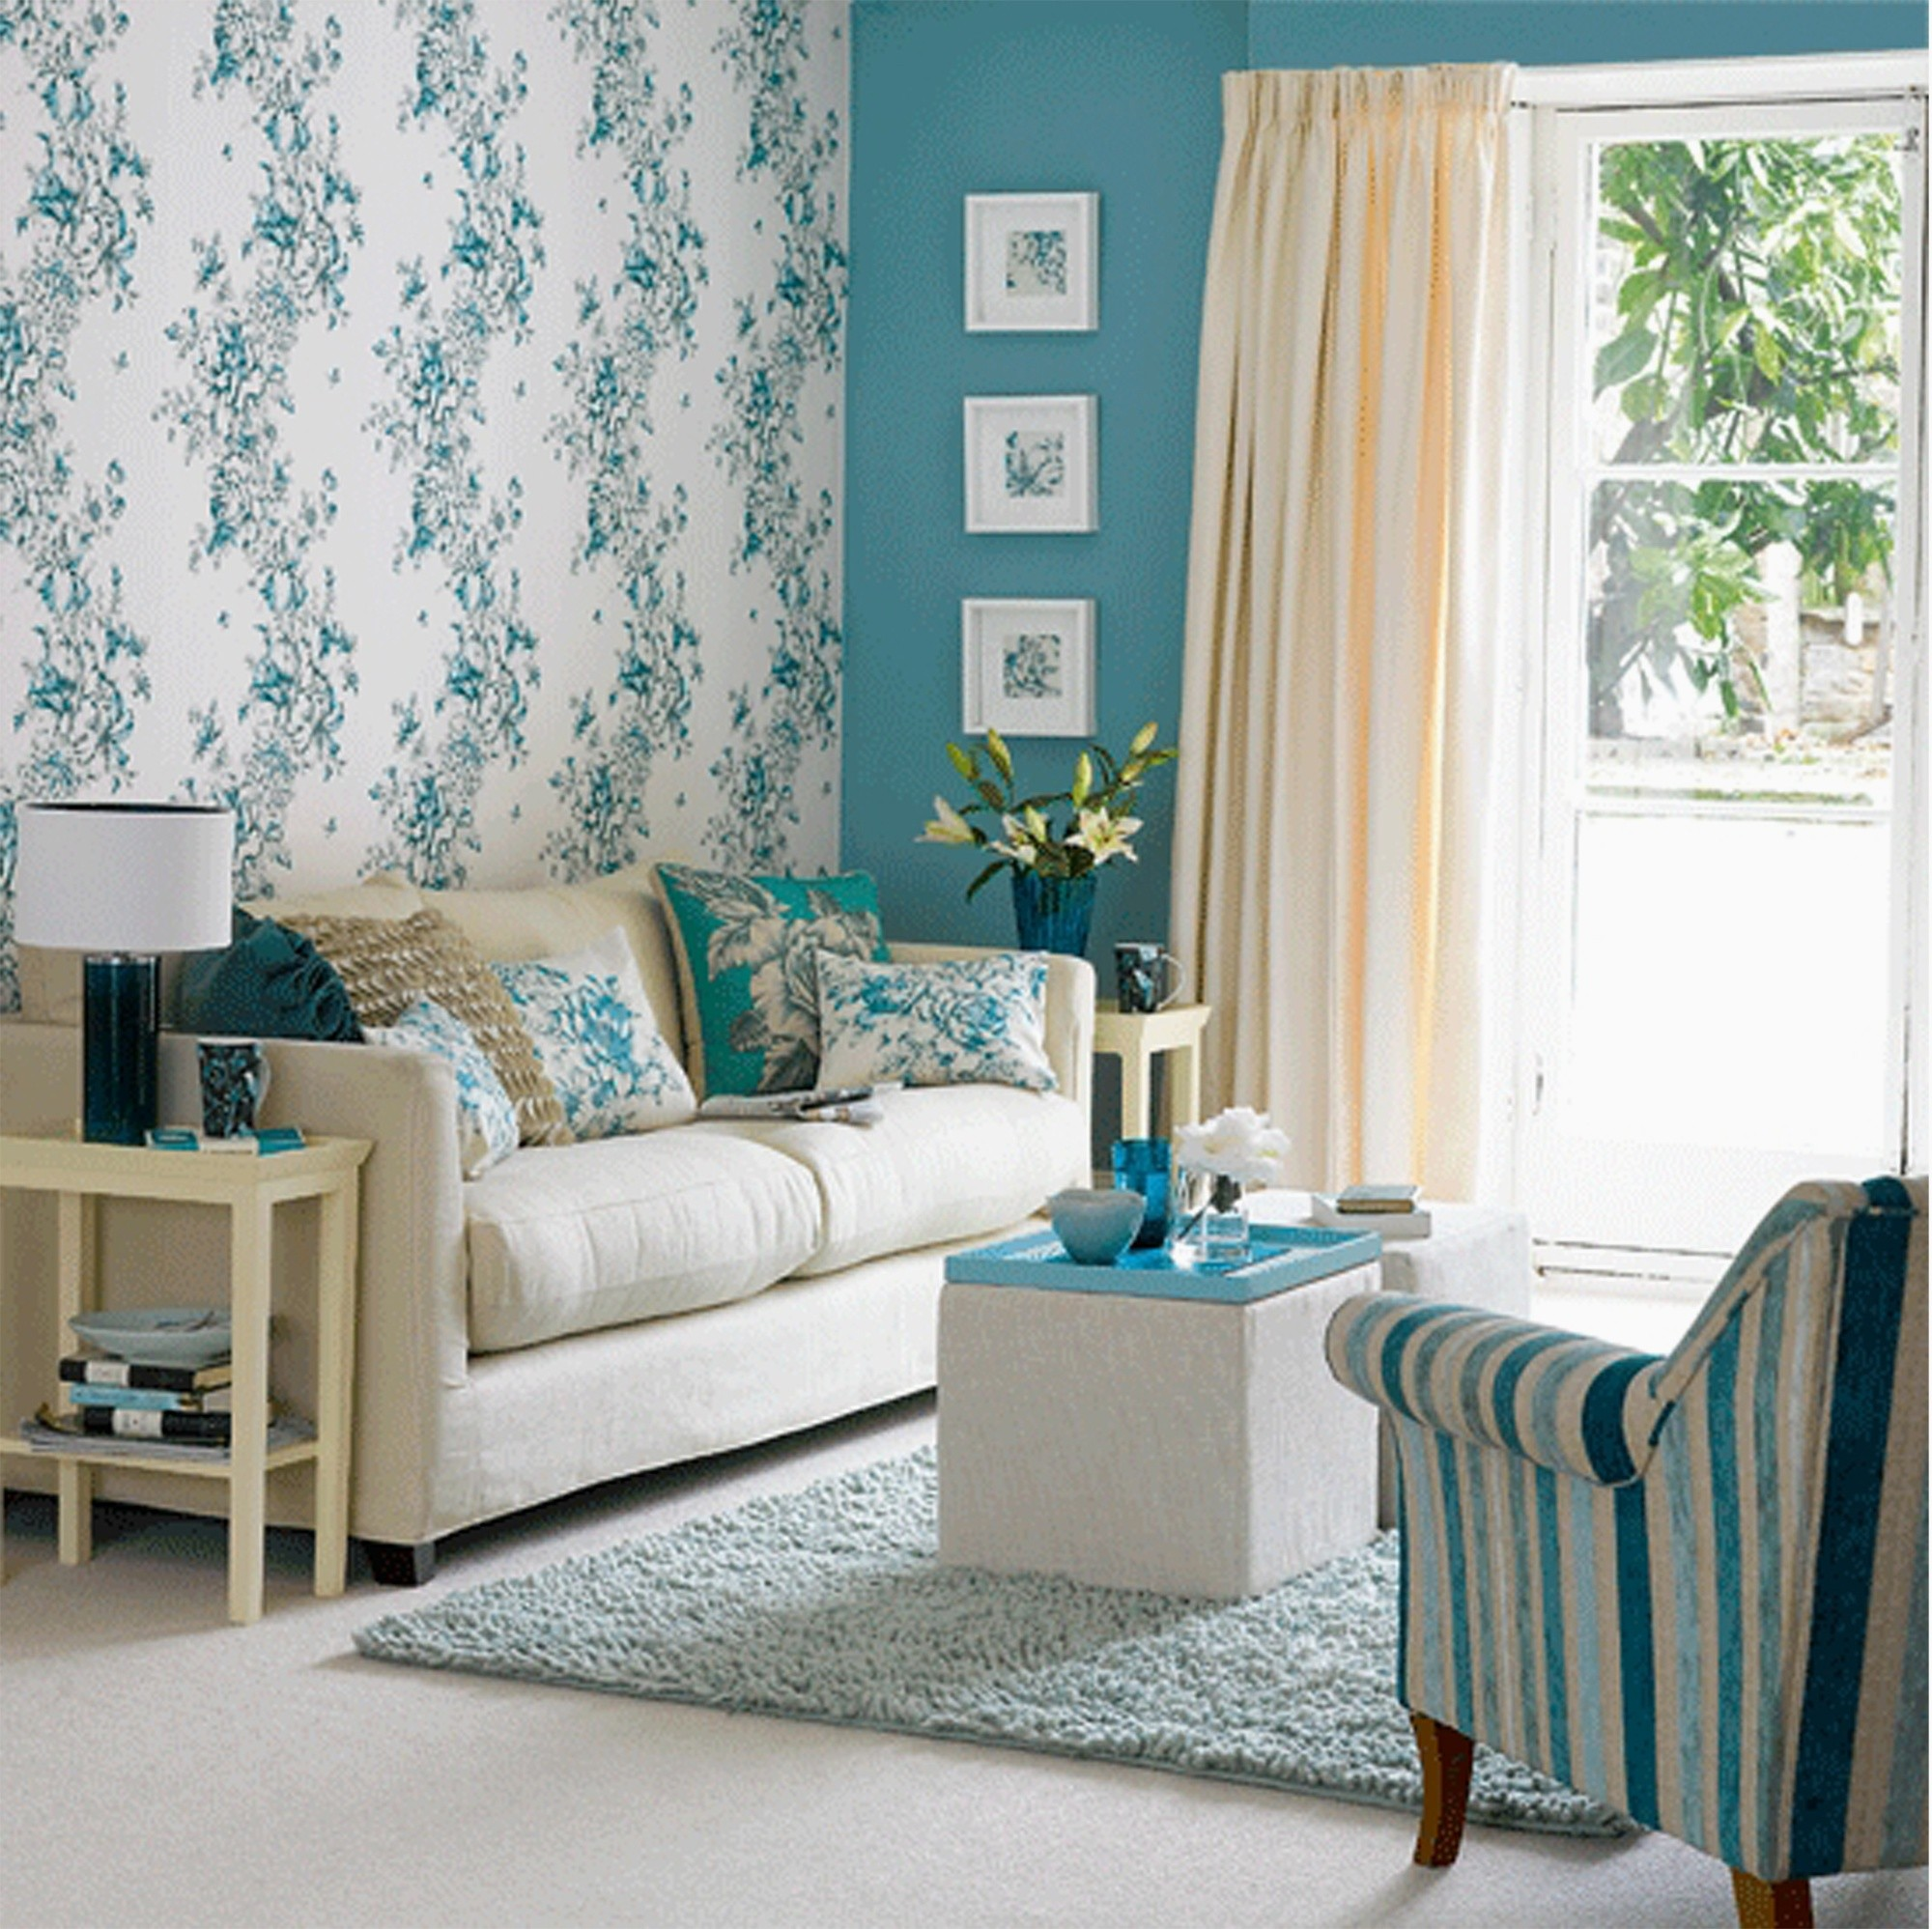 Full Size of can You Pass The Wallpaper Decoration For Living Room Retro Floral Wallpaper